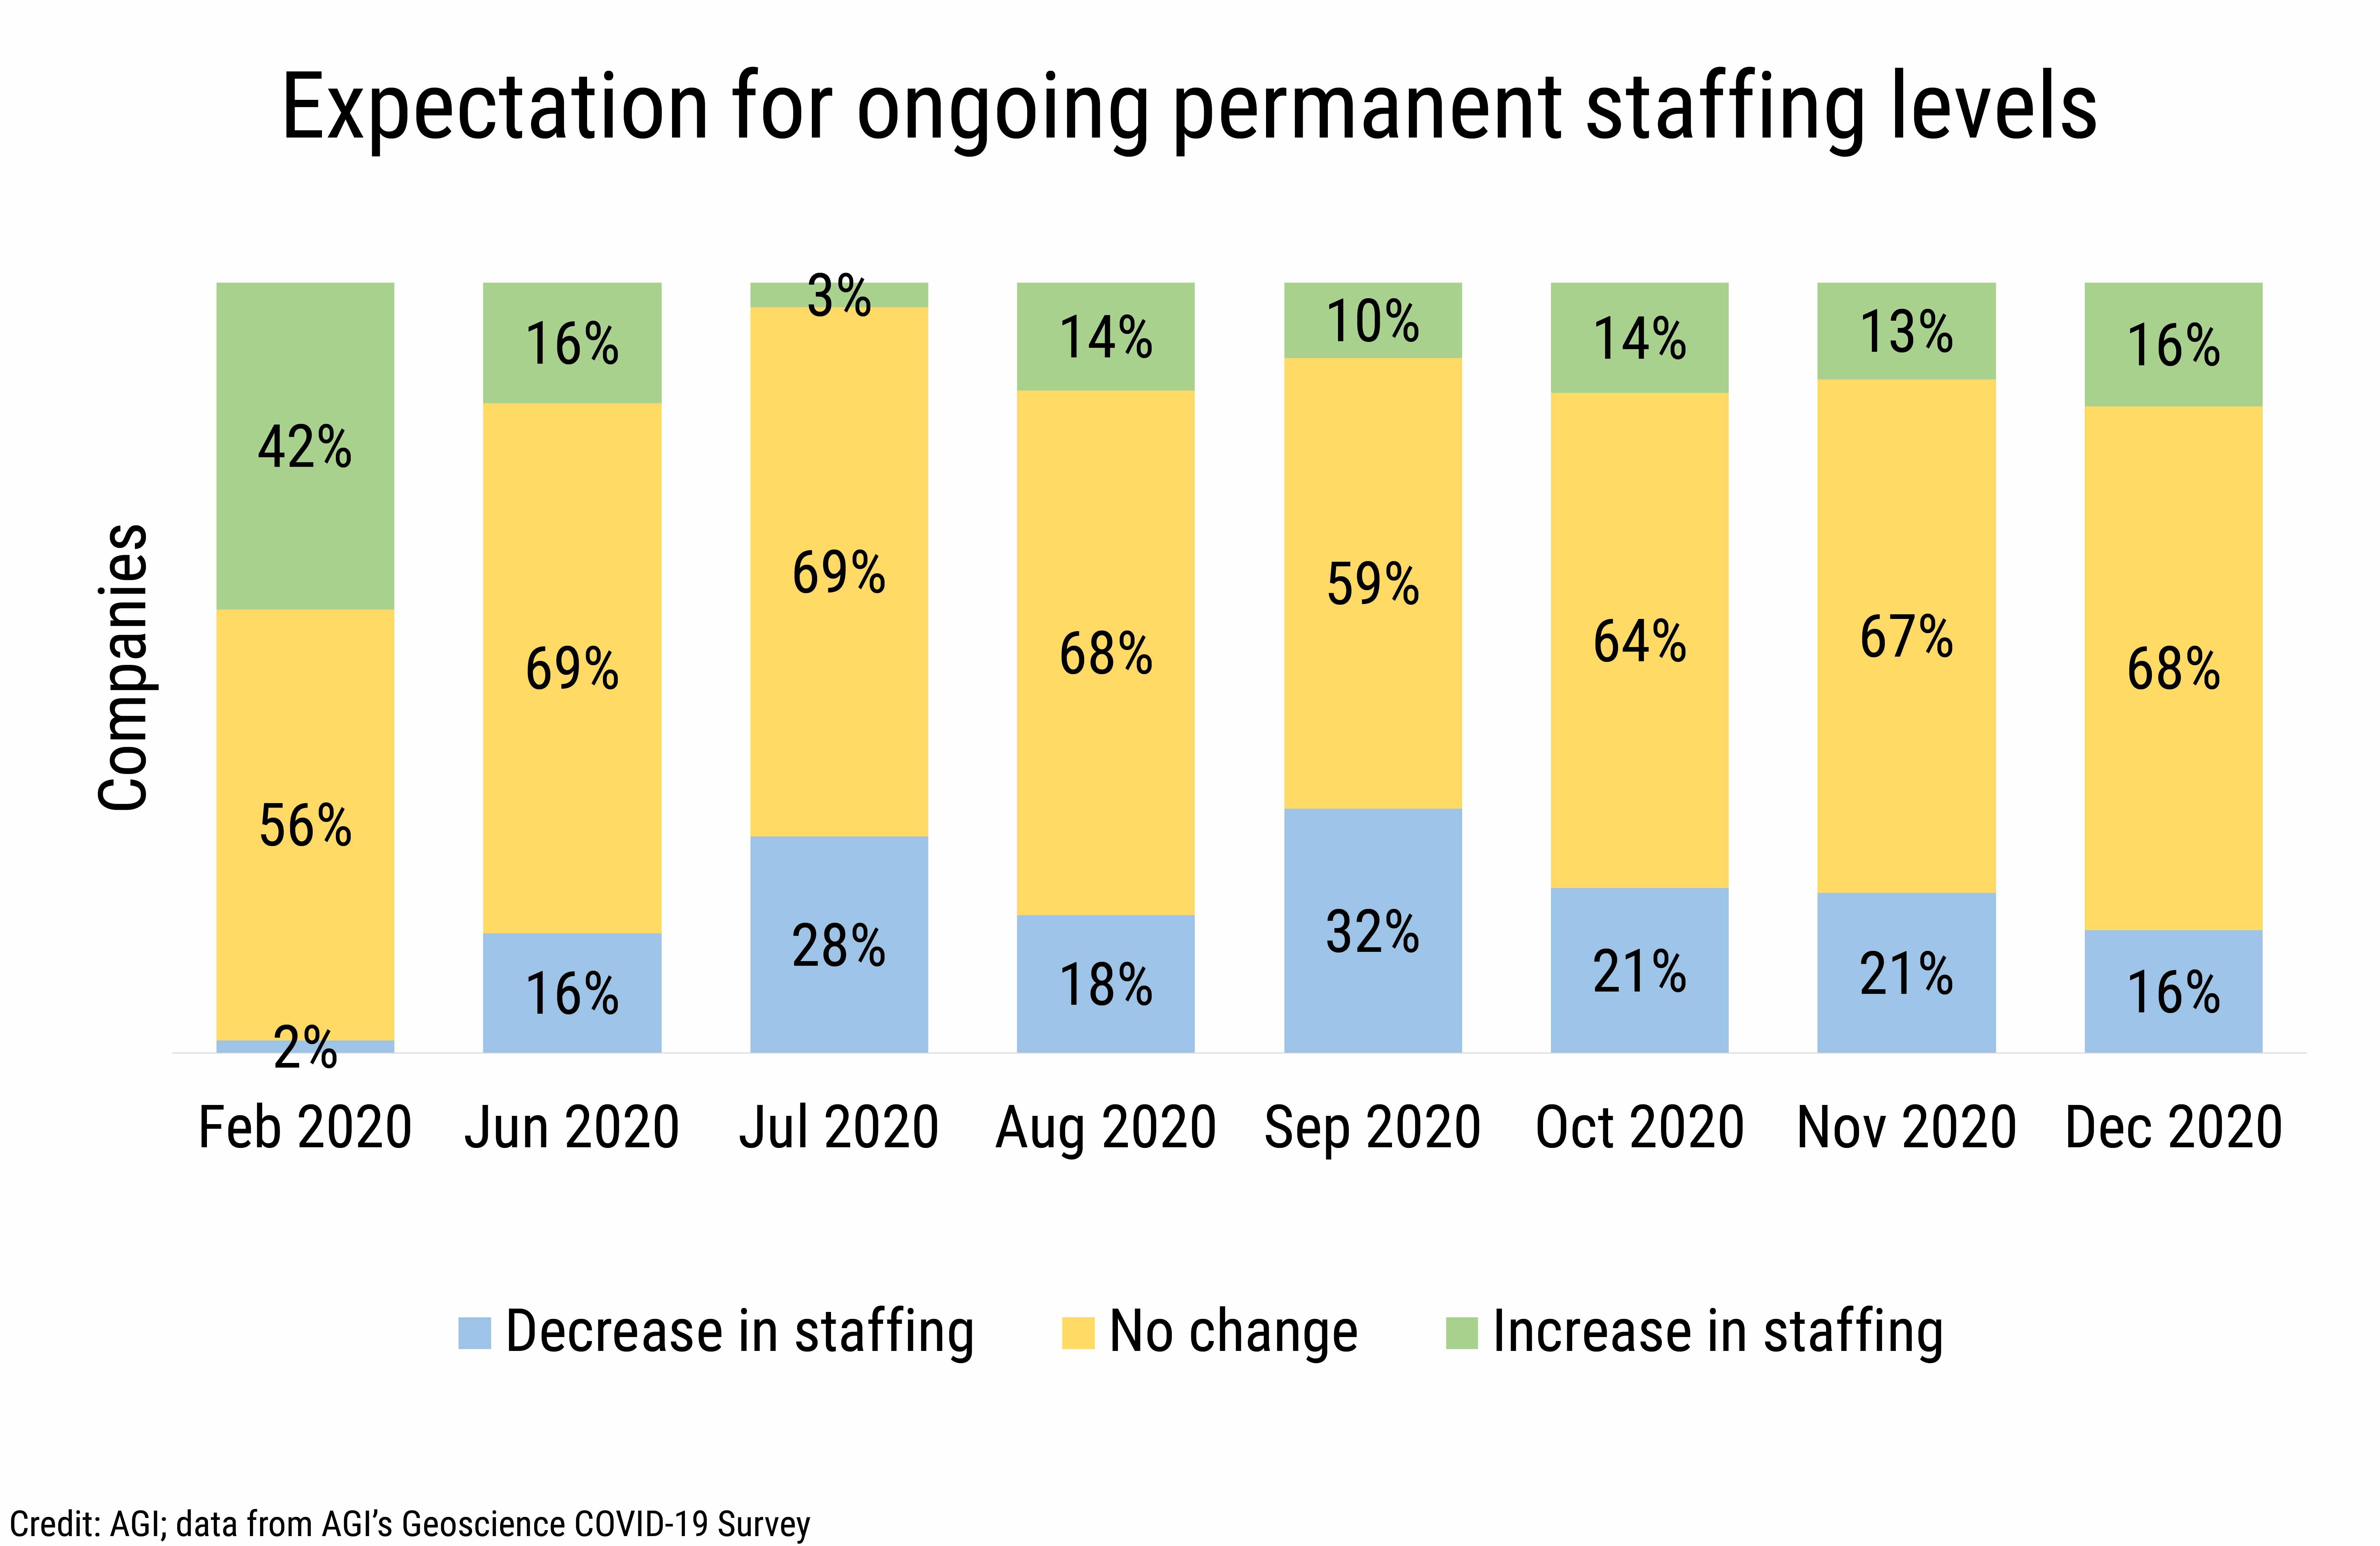 DB_2021-005_chart01: Expectation for ongoing permanet staffing levels (Credit: AGI; data from AGI's Geoscience COVID-19 Survey)